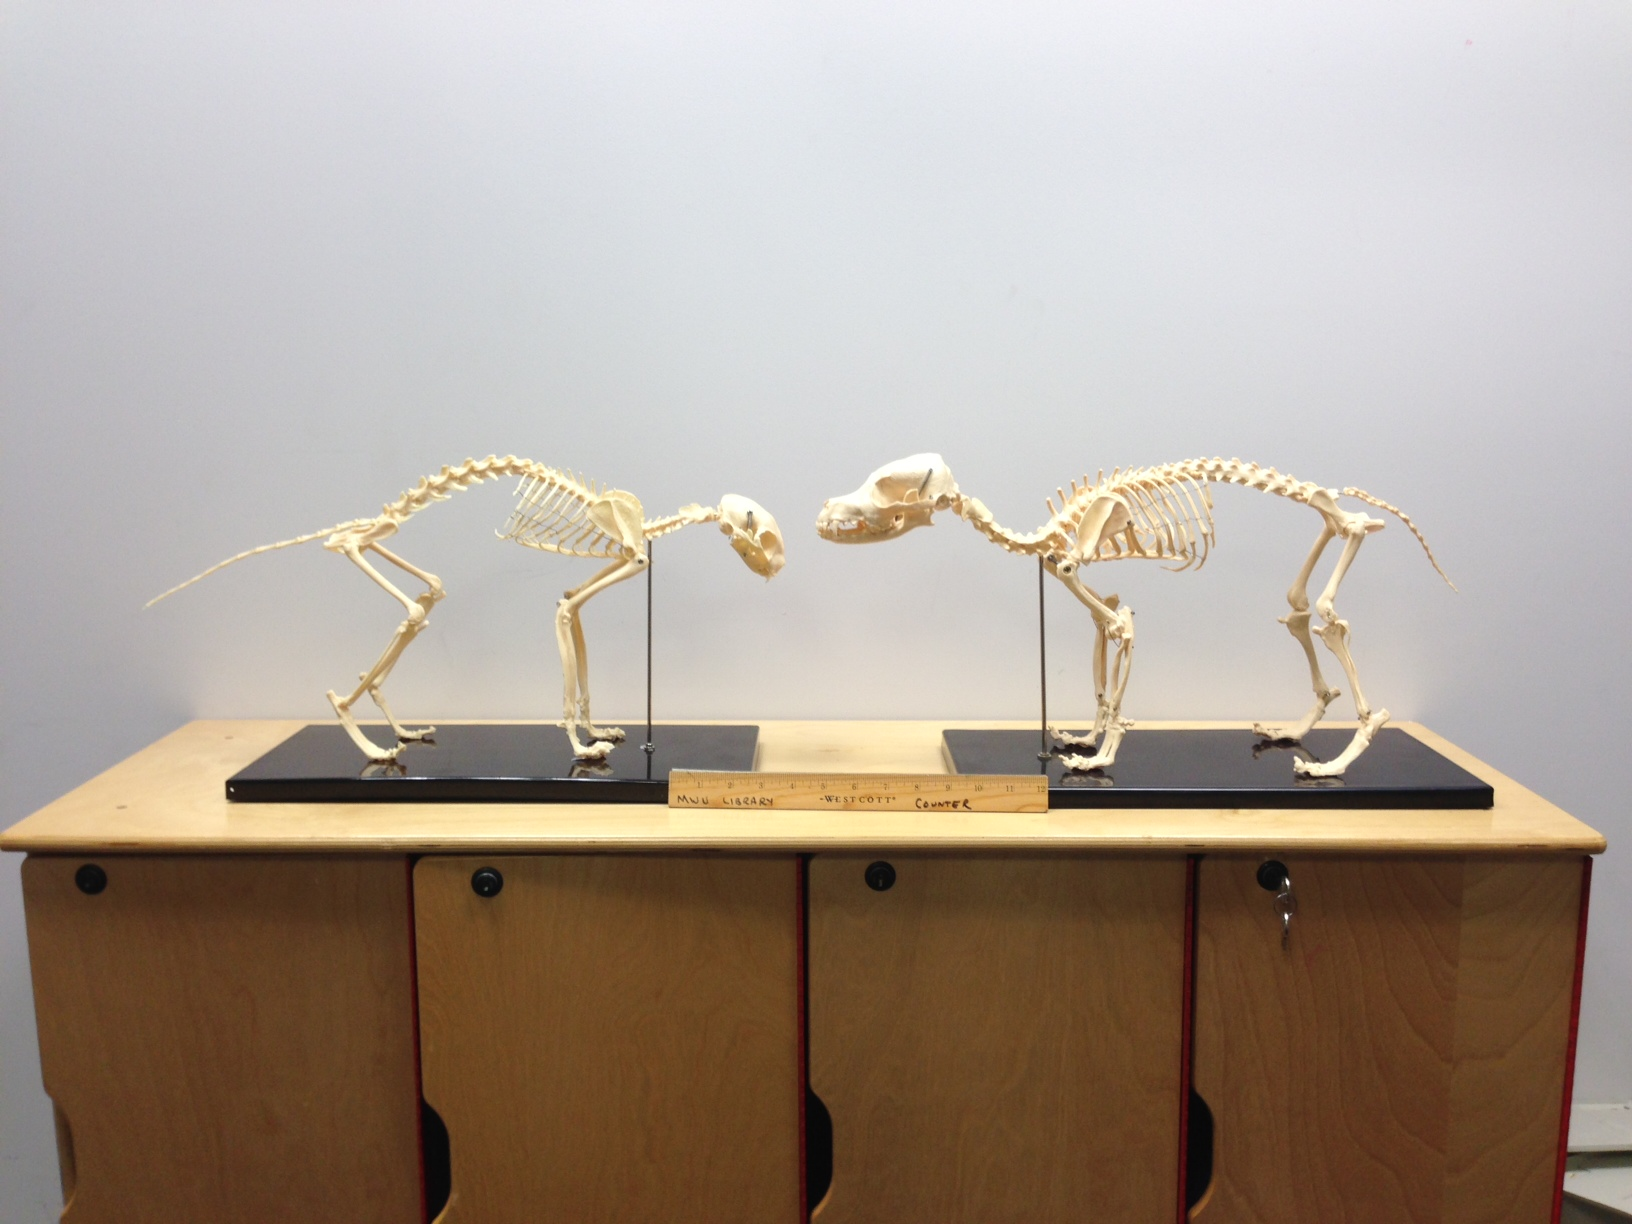 Dog & Cat - Anatomy, Veterinary - MWU Library at Midwestern University